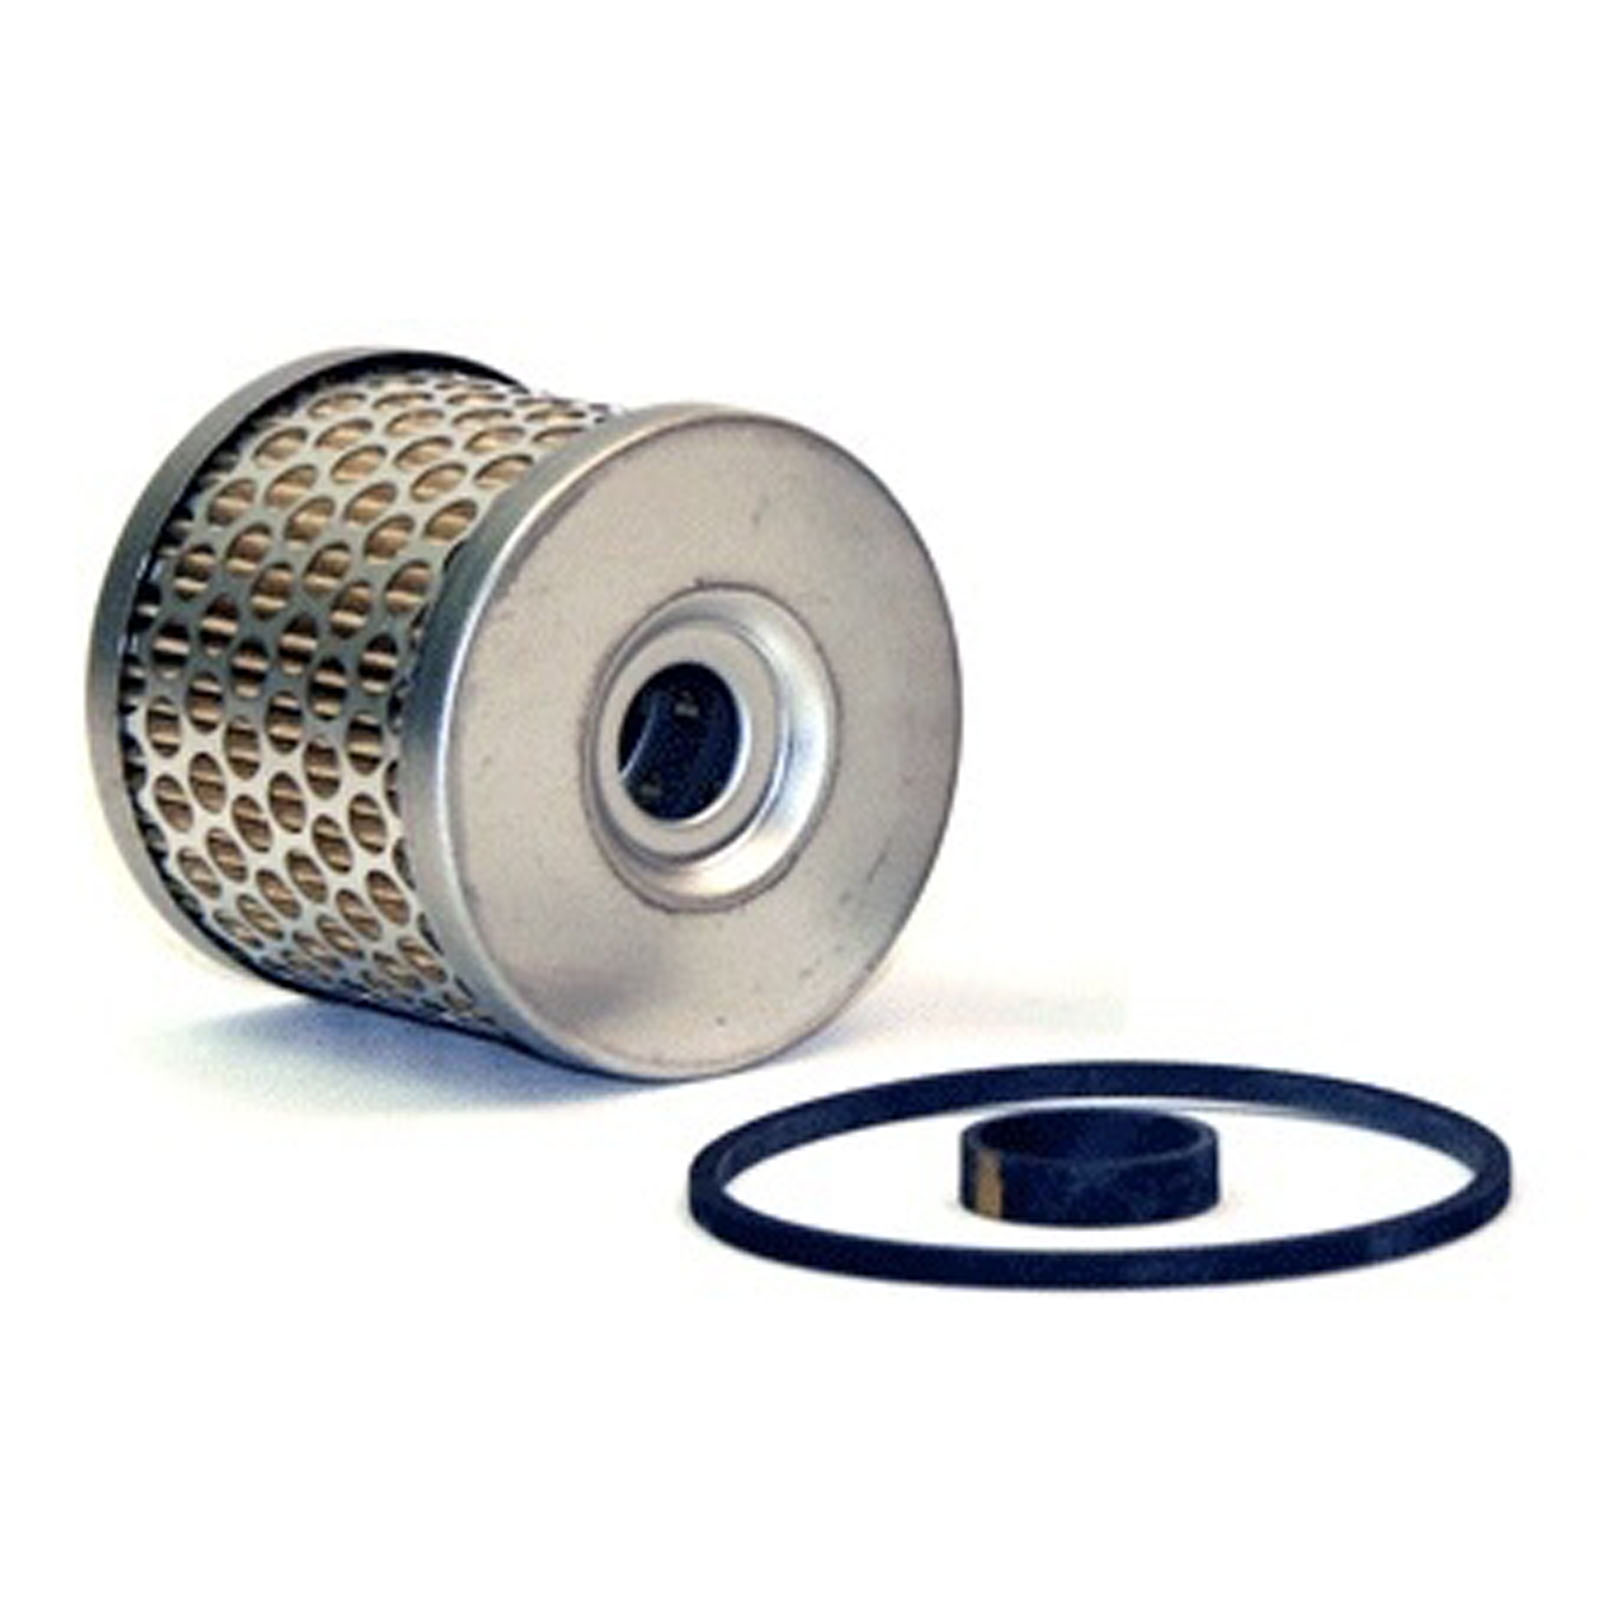 hight resolution of wix racing filters 33900r fuel filter replaces fram hpgc1